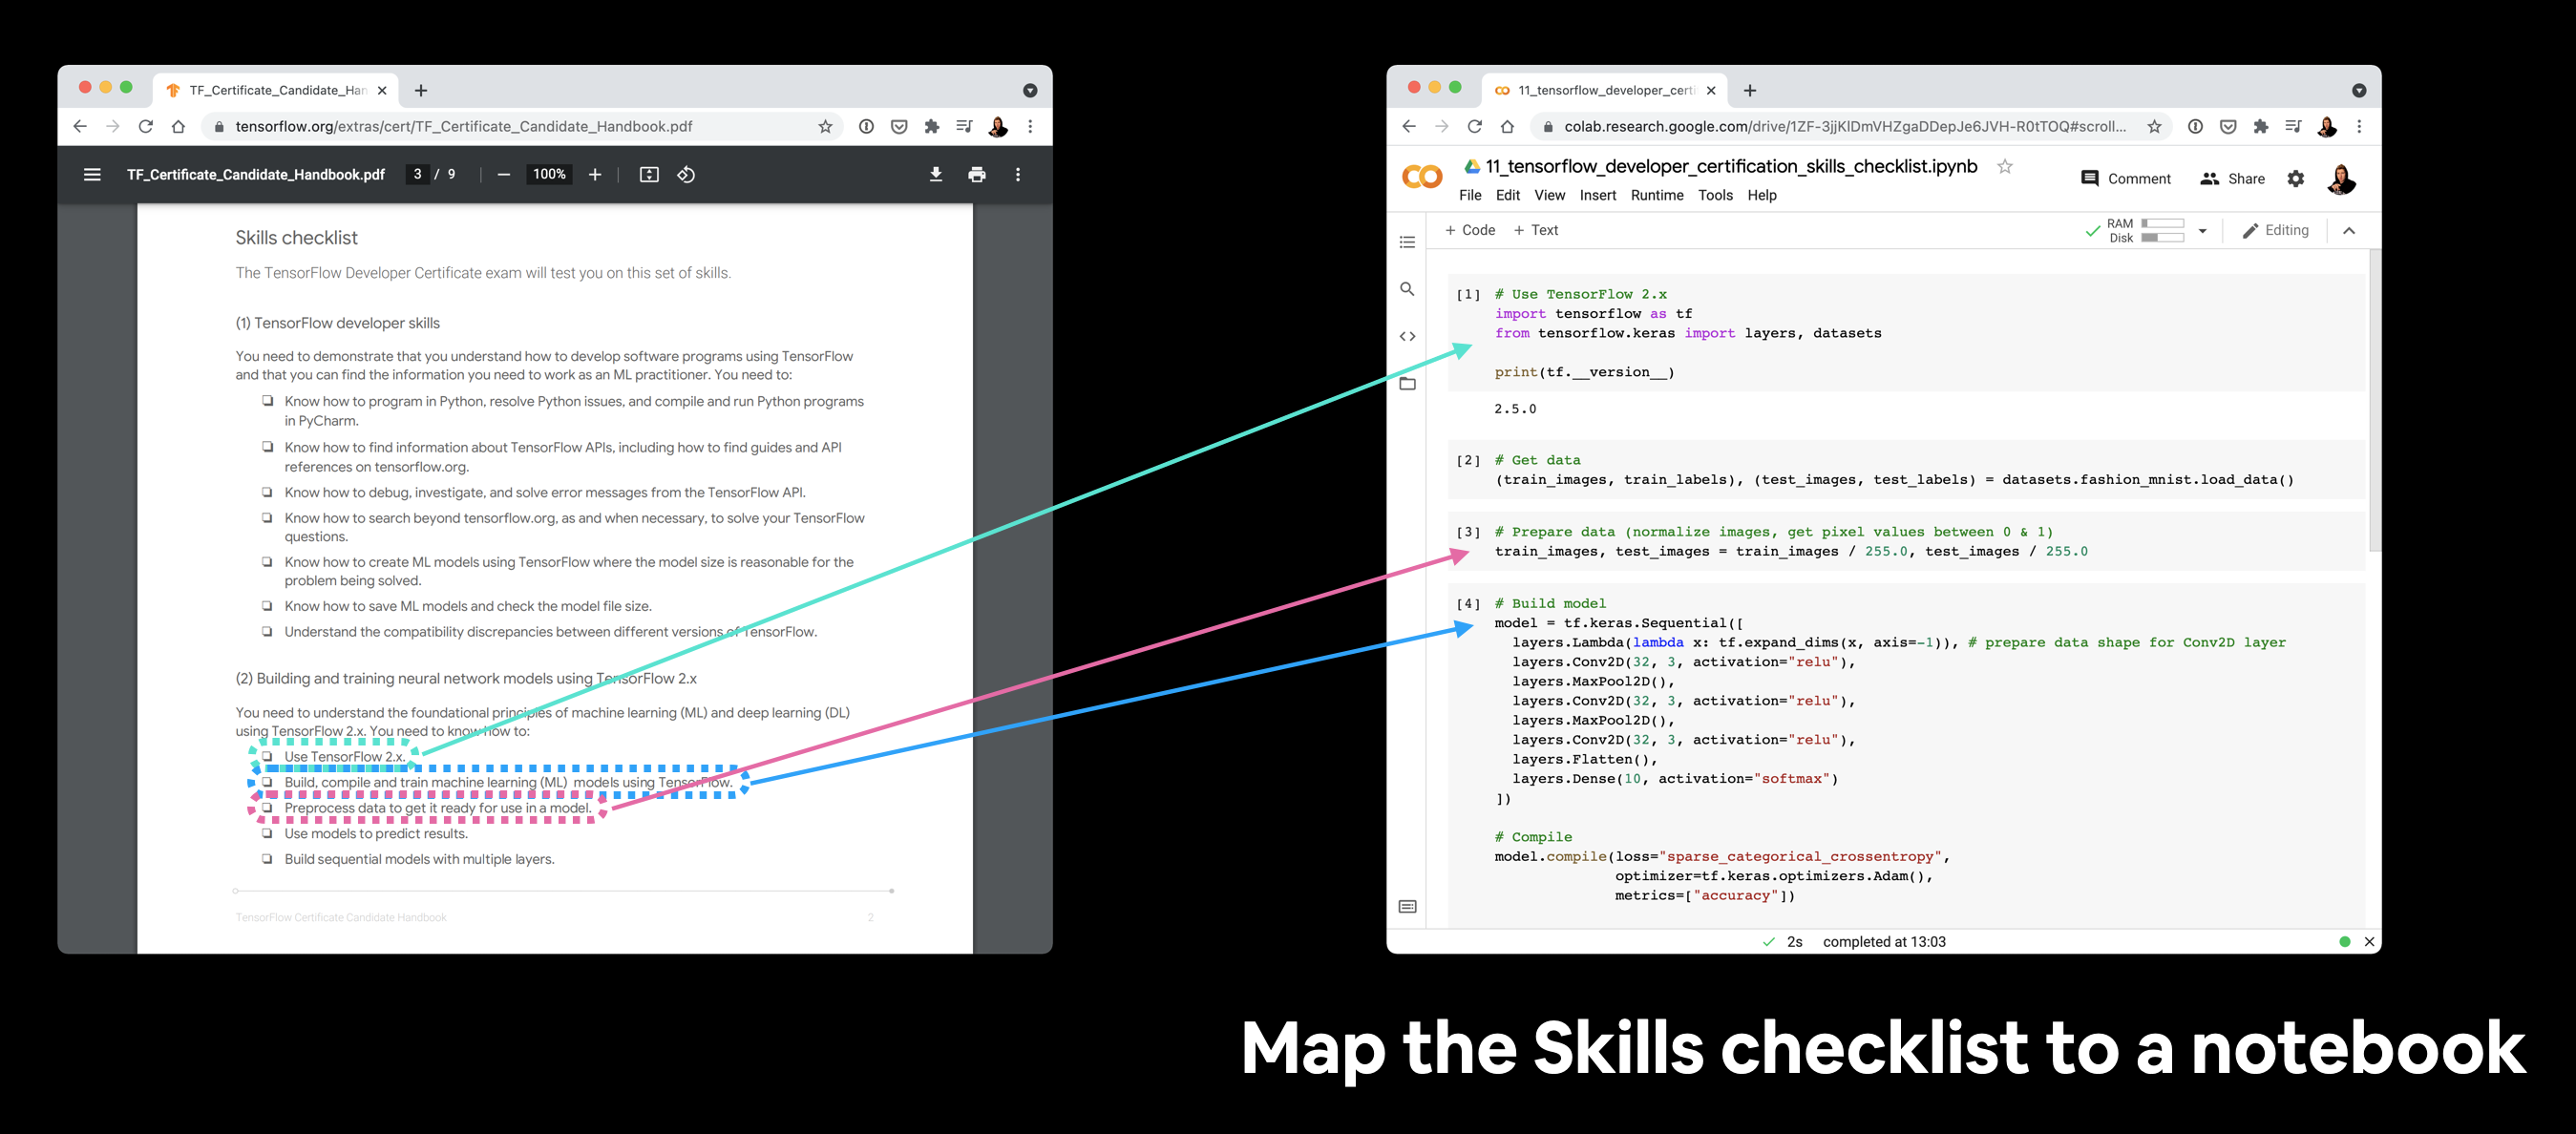 mapping the TensorFlow Developer handbook to code in a notebook